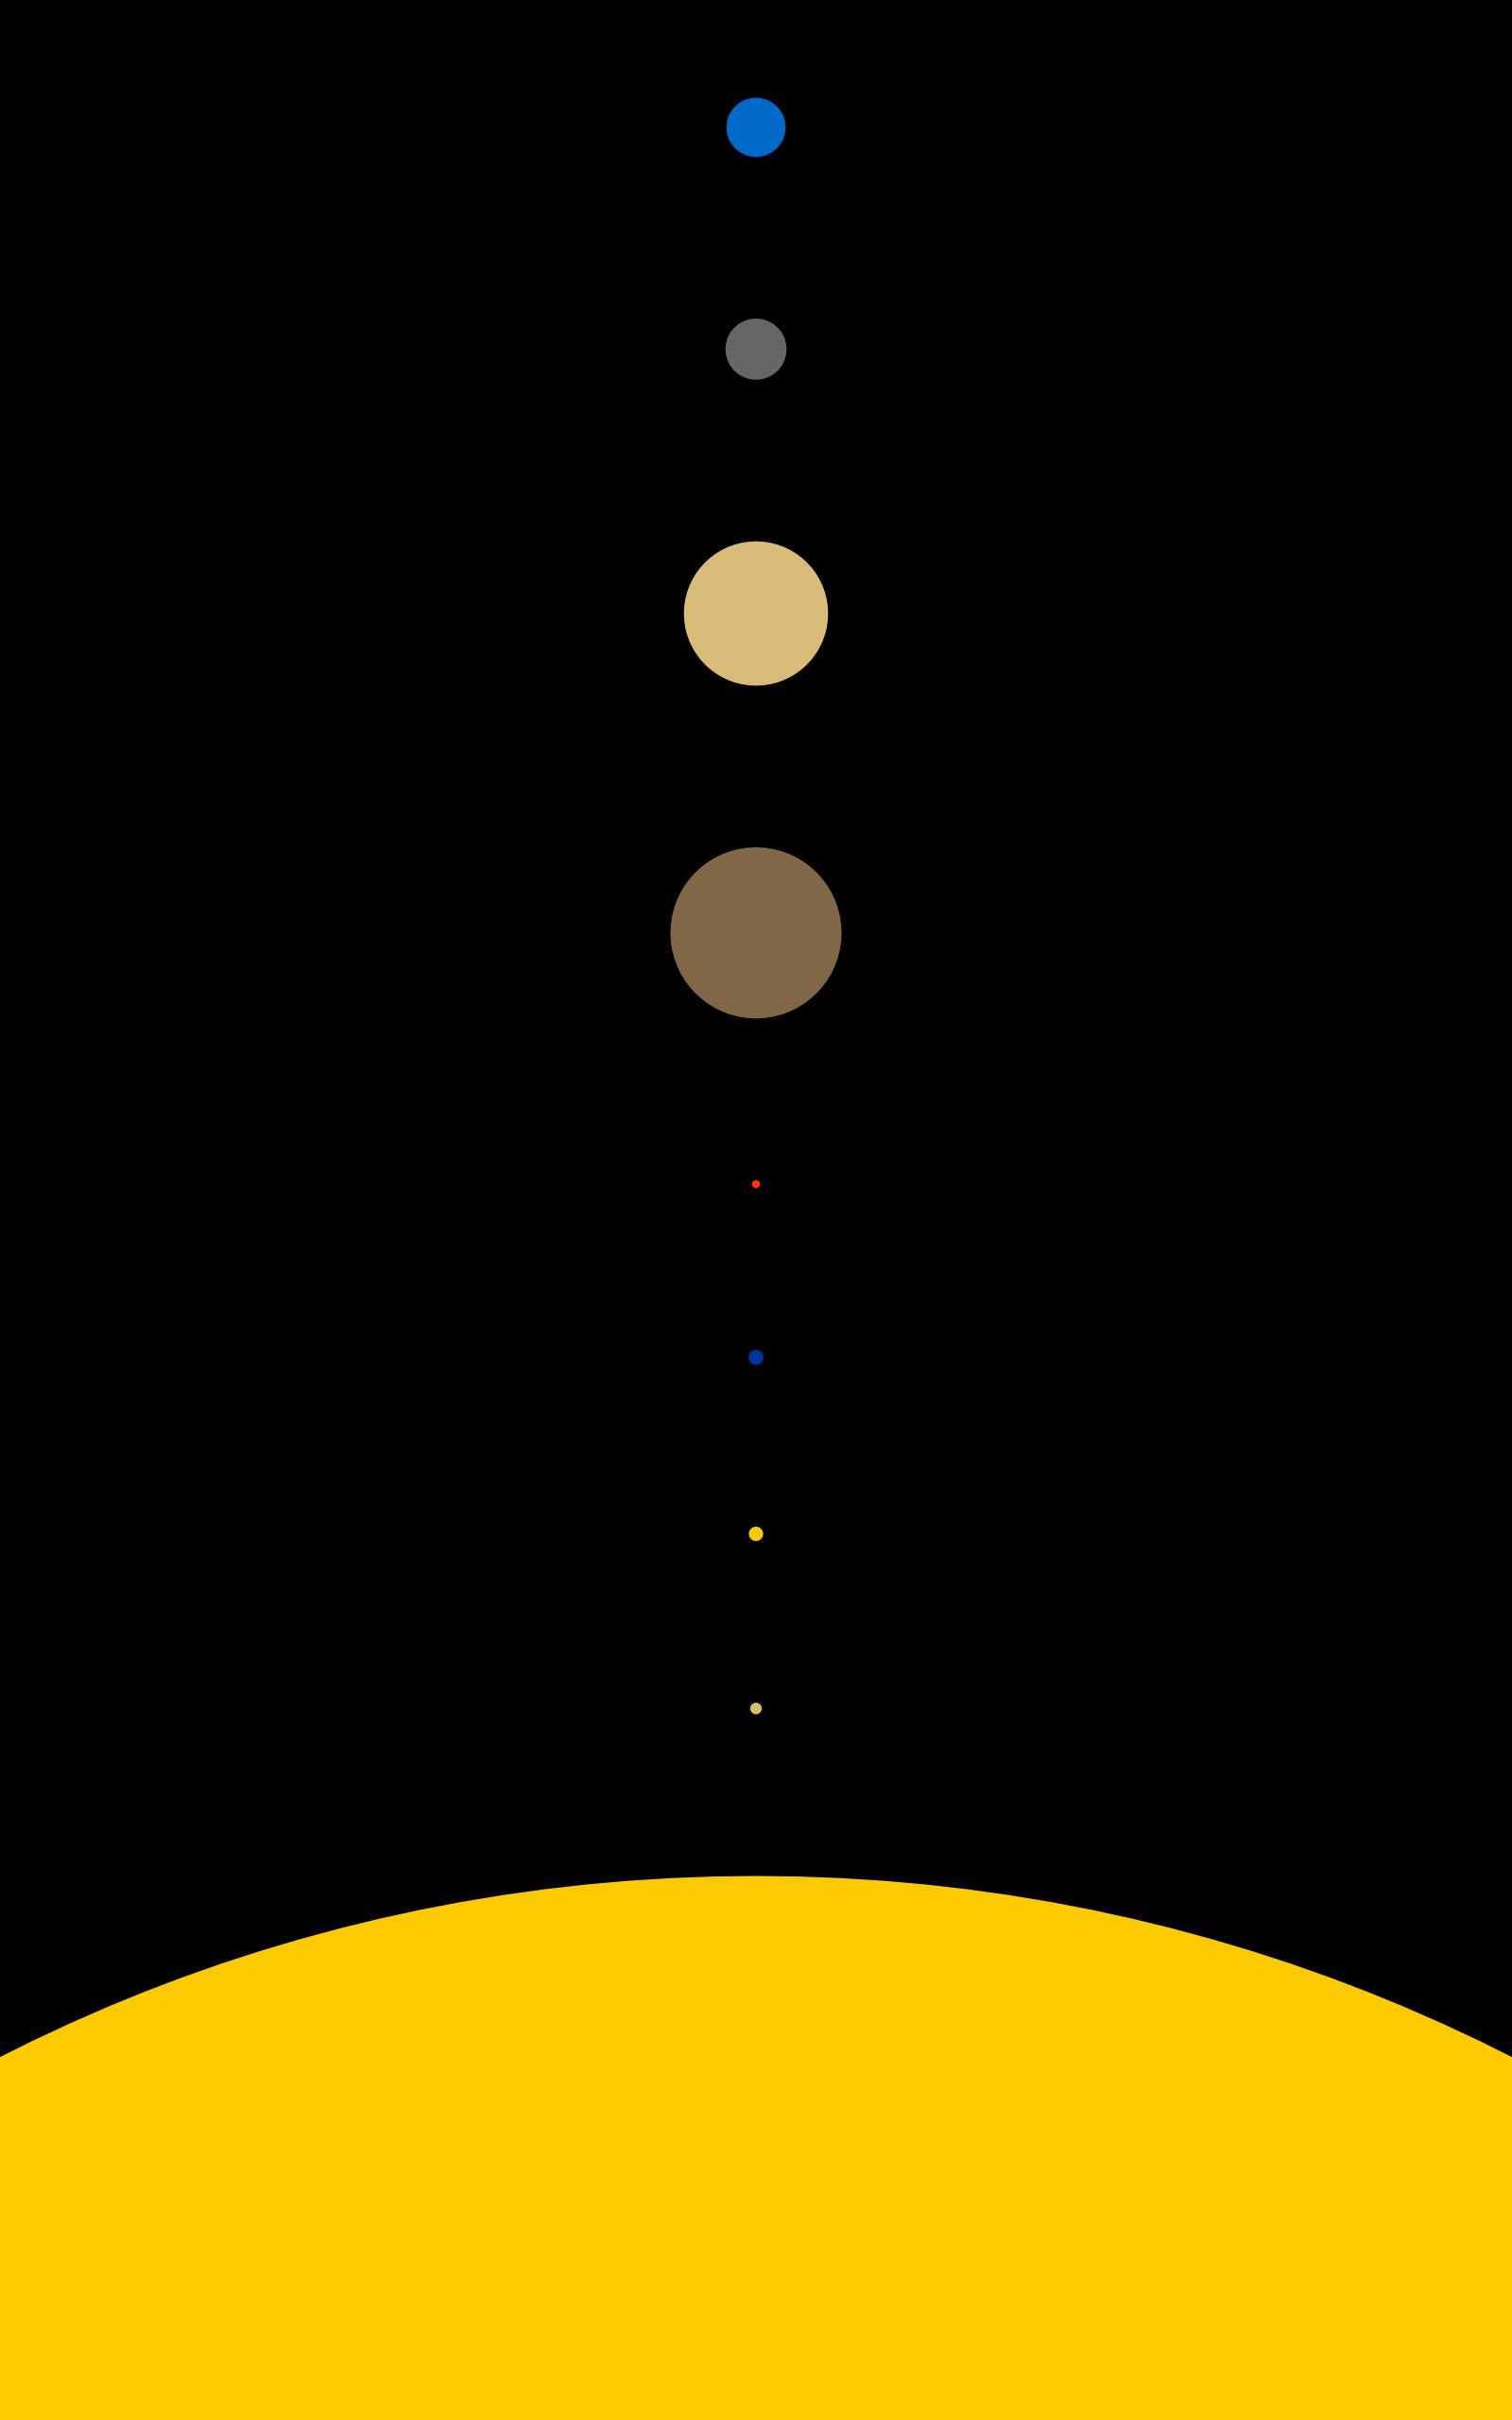 Solar System, Space, Planet, Minimalism, Portrait Display - Hd Space Phone Wallpapers Minimalist , HD Wallpaper & Backgrounds